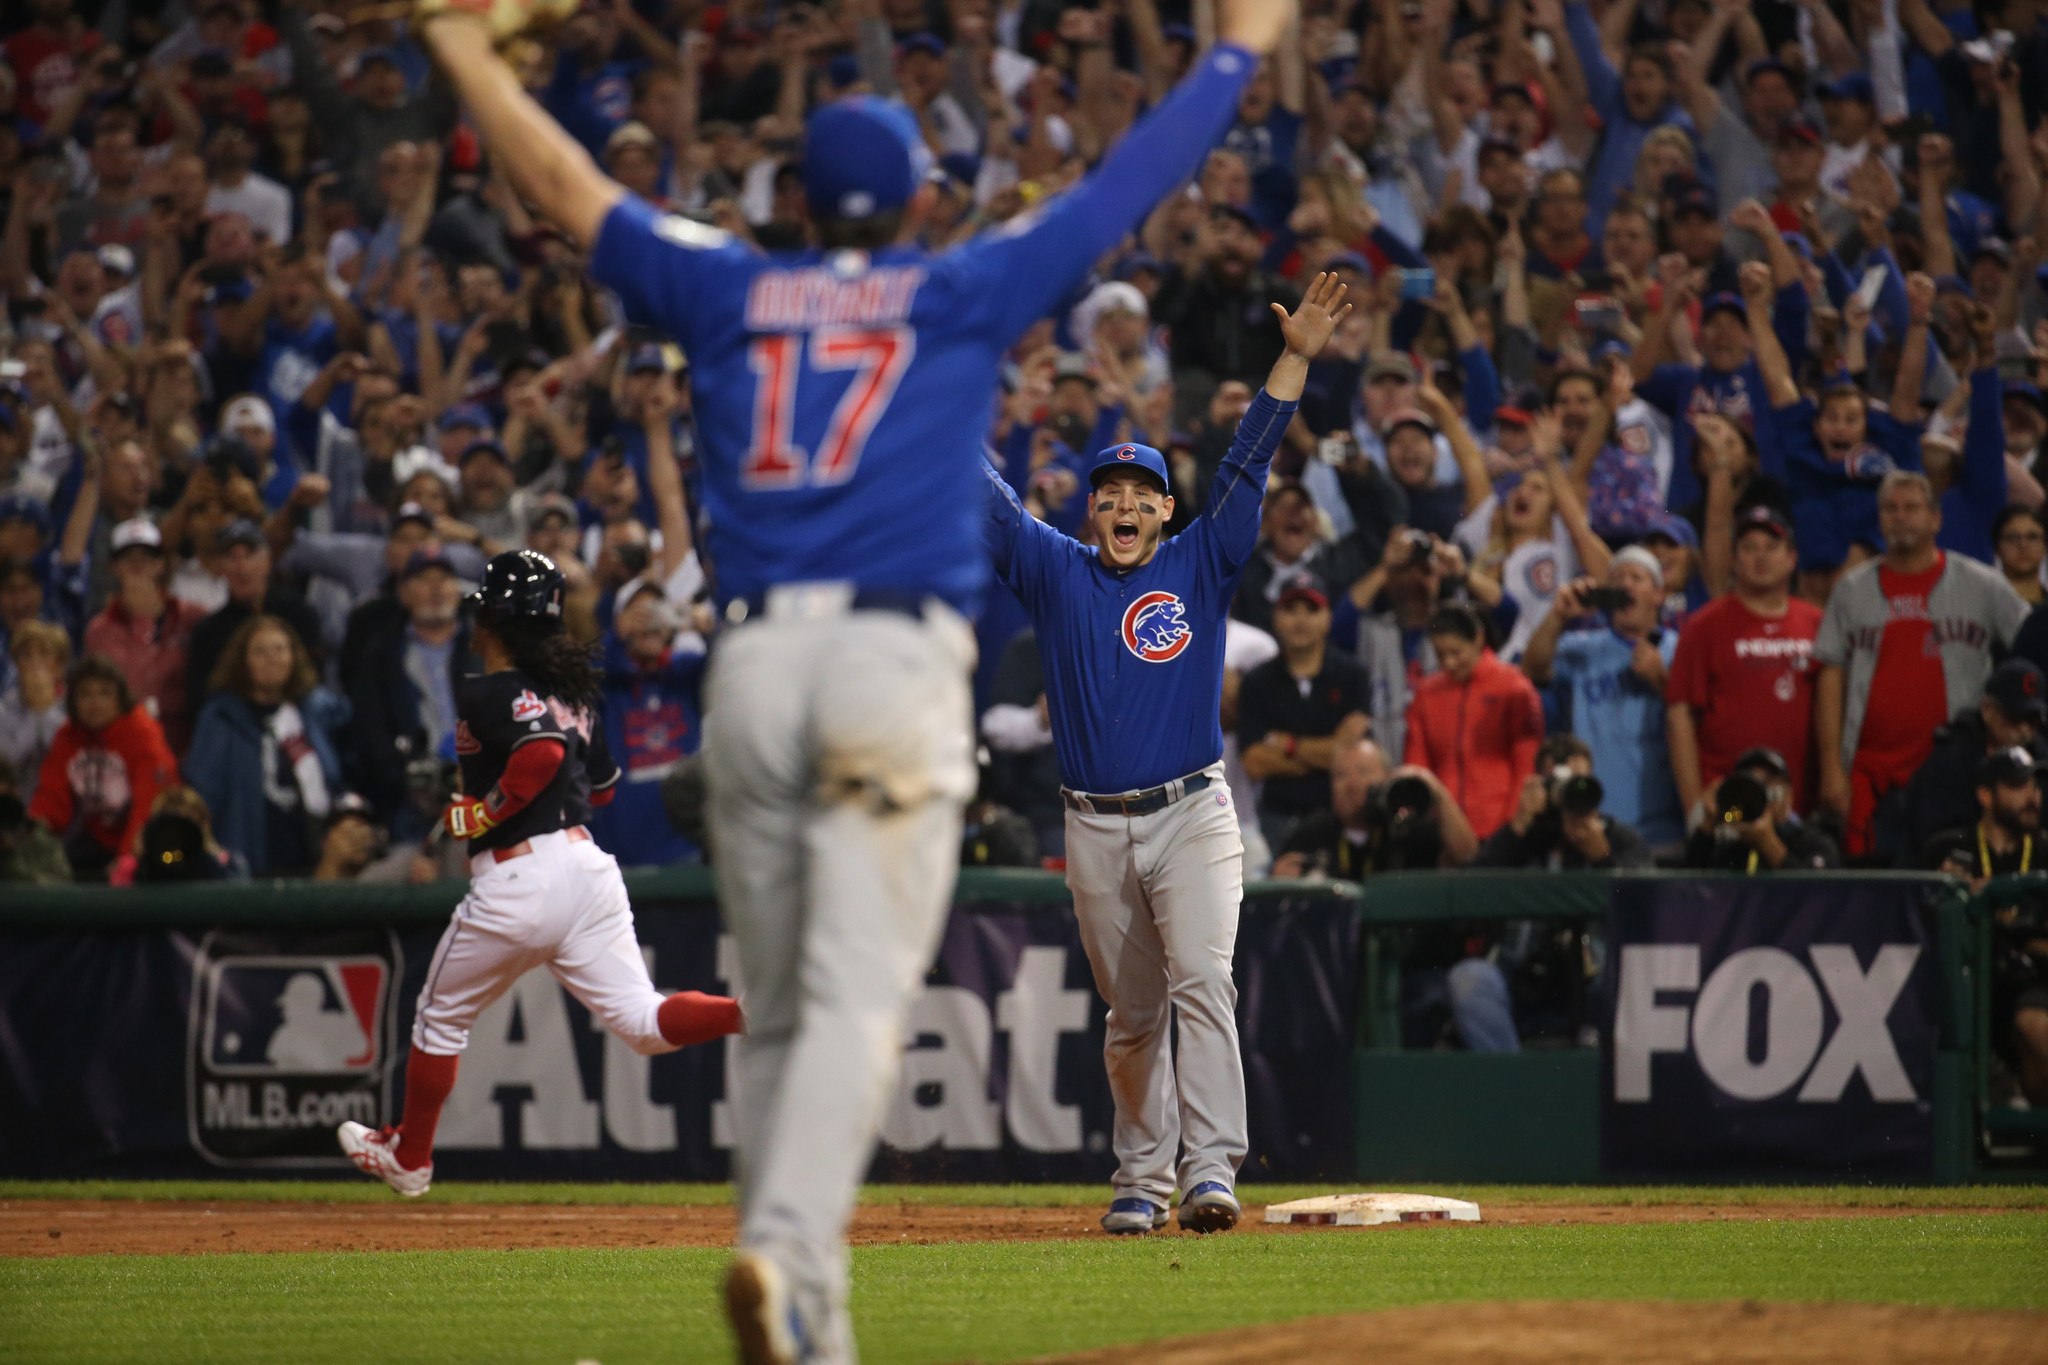 b94864d92bf Chicago Cubs win World Series championship with 8-7 victory over Cleveland  Indians - Chicago Tribune